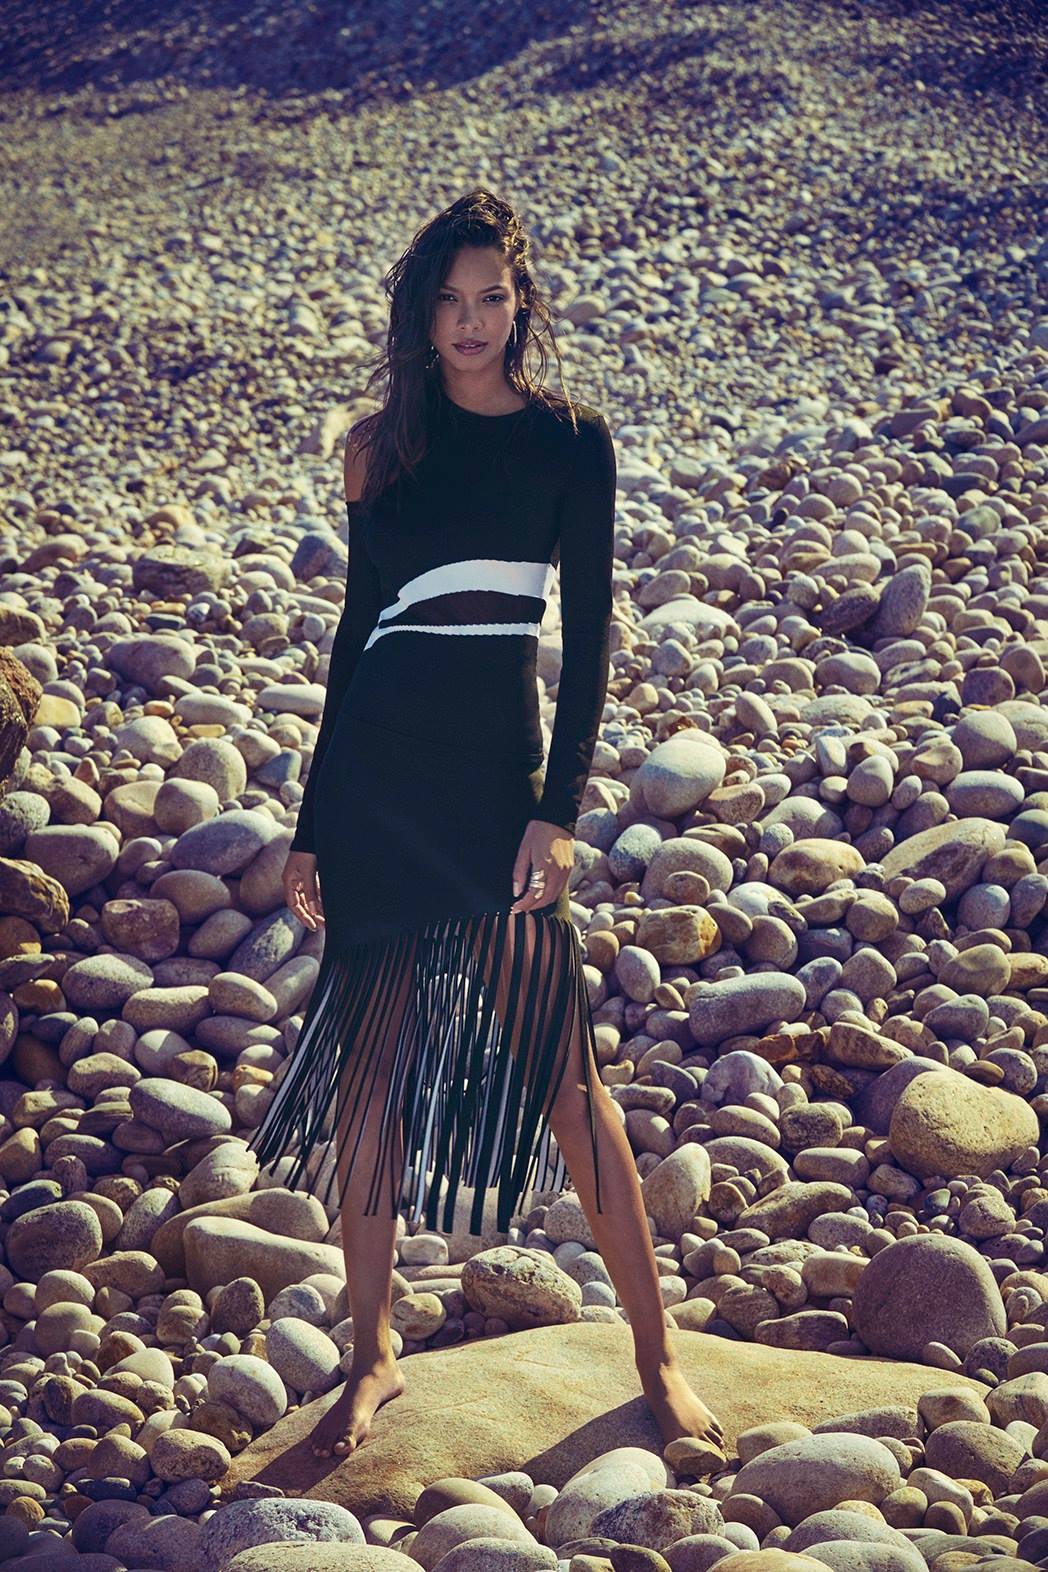 Lais Ribeiro poses in fringed outfit